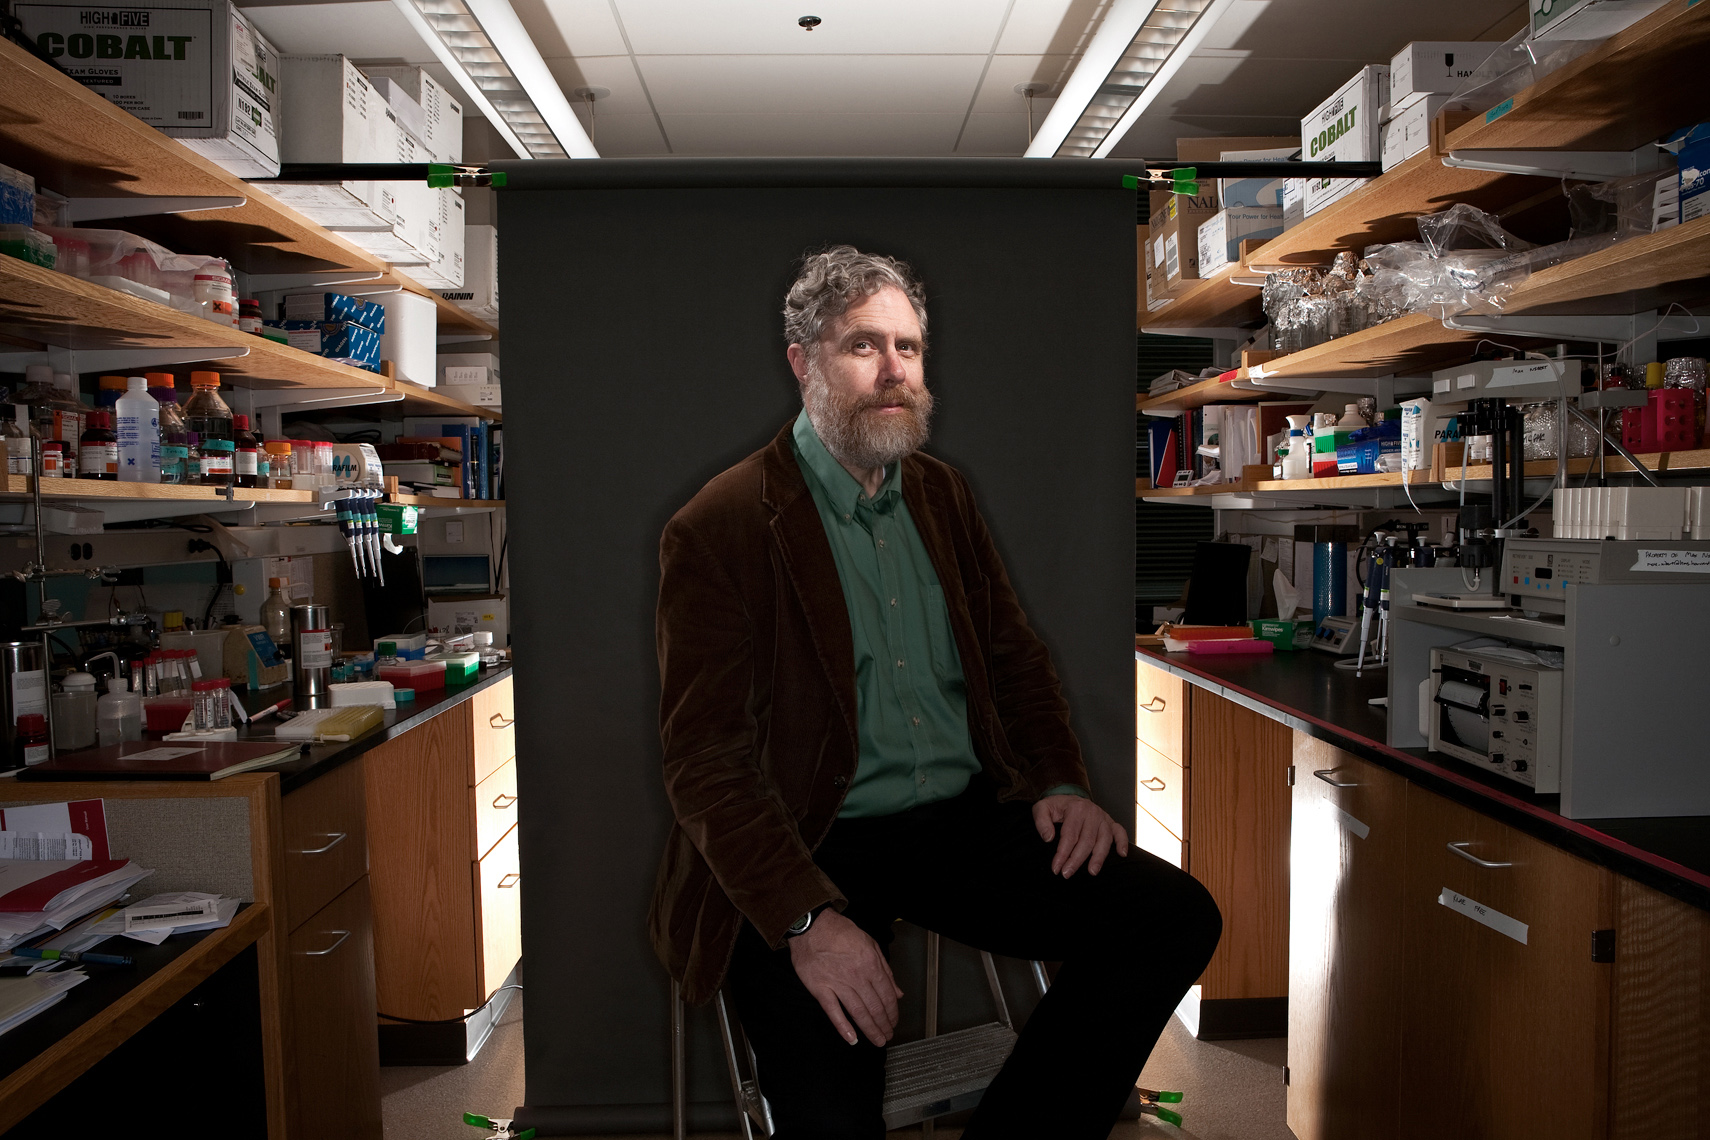 GEORGE CHURCH • HARVARD UNIVERSITY GENETICIST • JASON GROW PHOTOGRAPHY